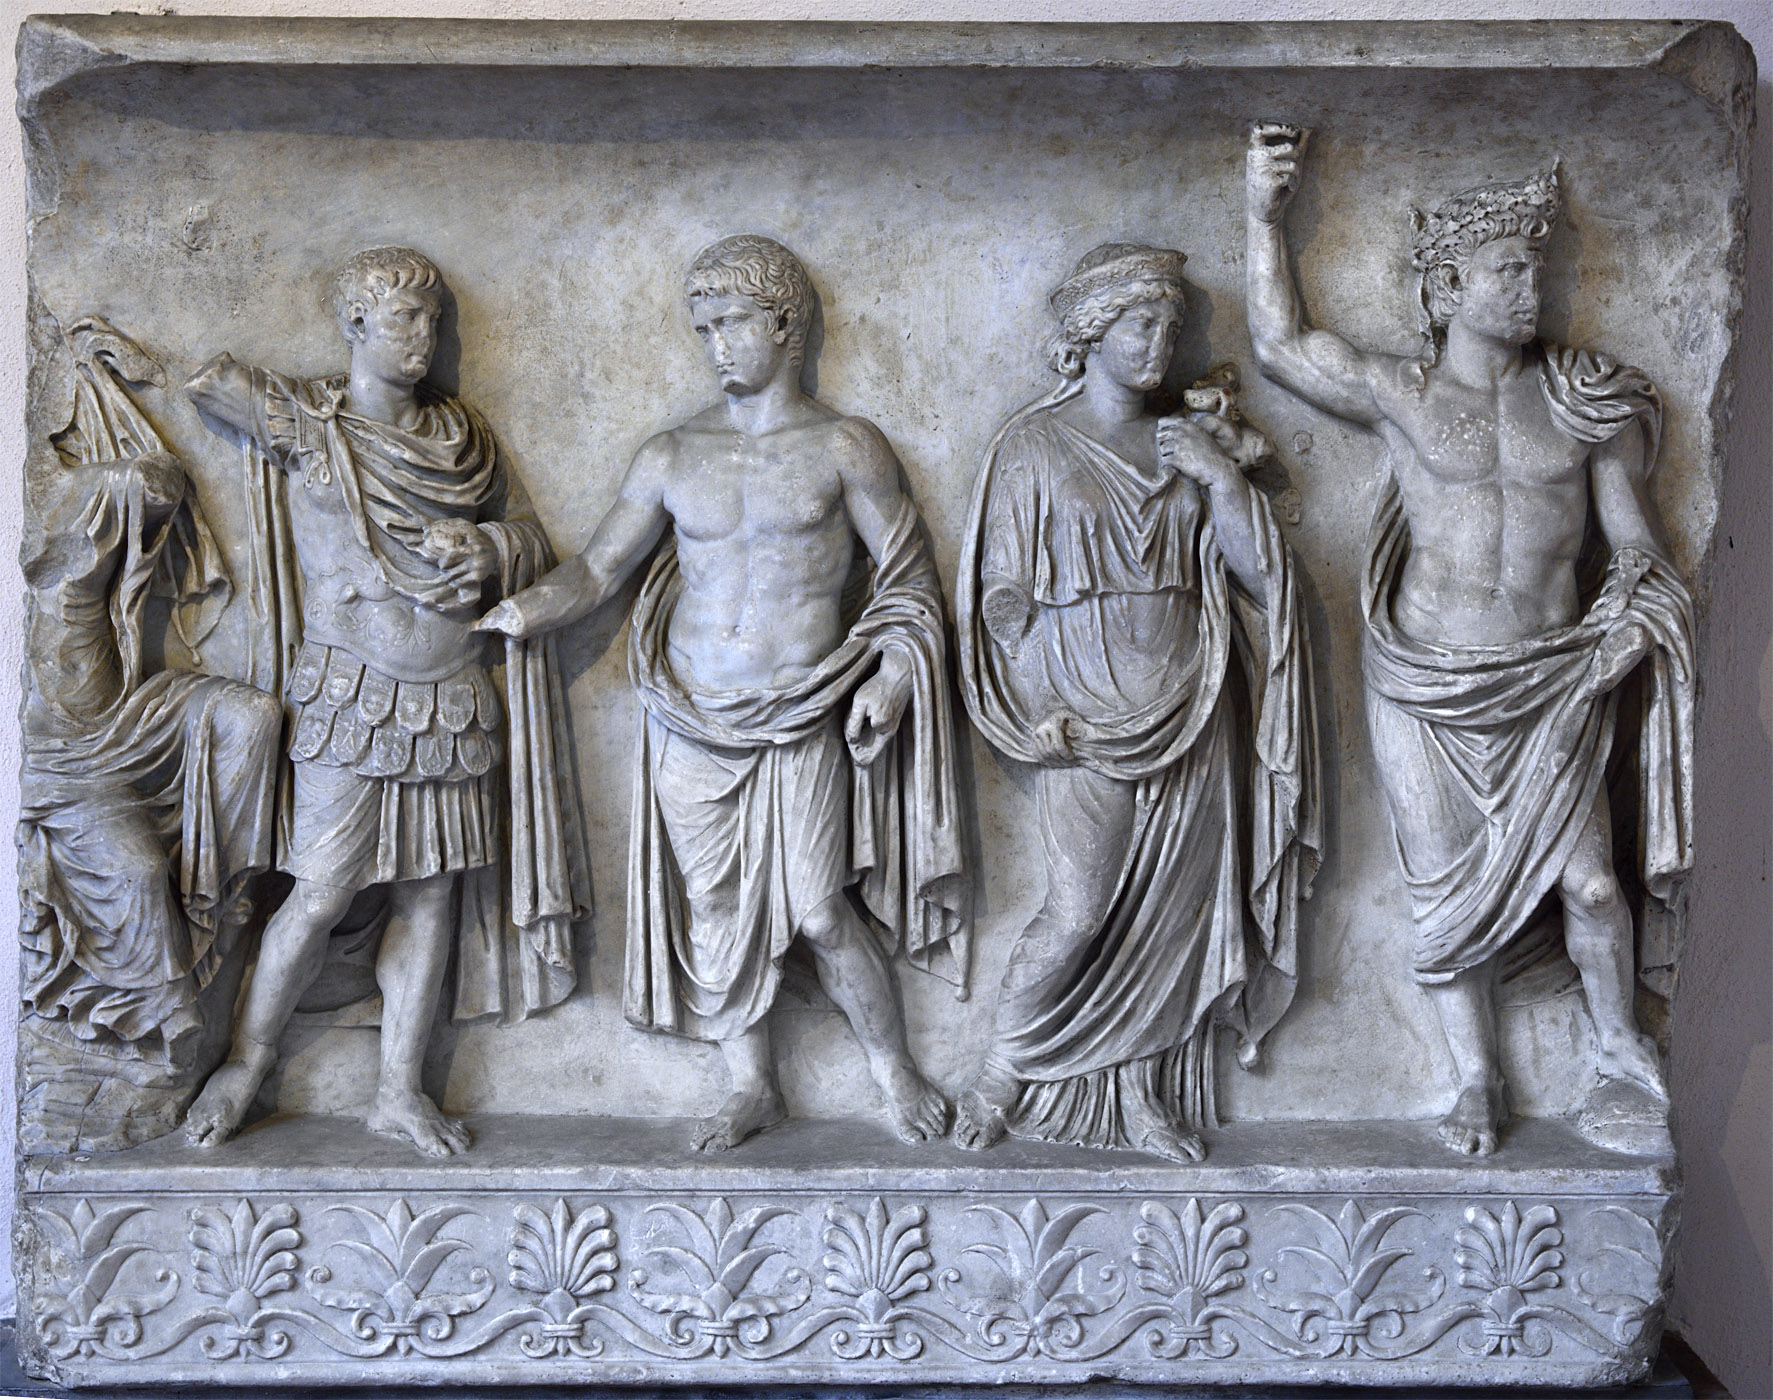 Altar relief with representation of members of gens Julia-Claudia (right part). Marble. 42—43 CE. Inv. No. 6. Ravenna, National Museum, First cloister